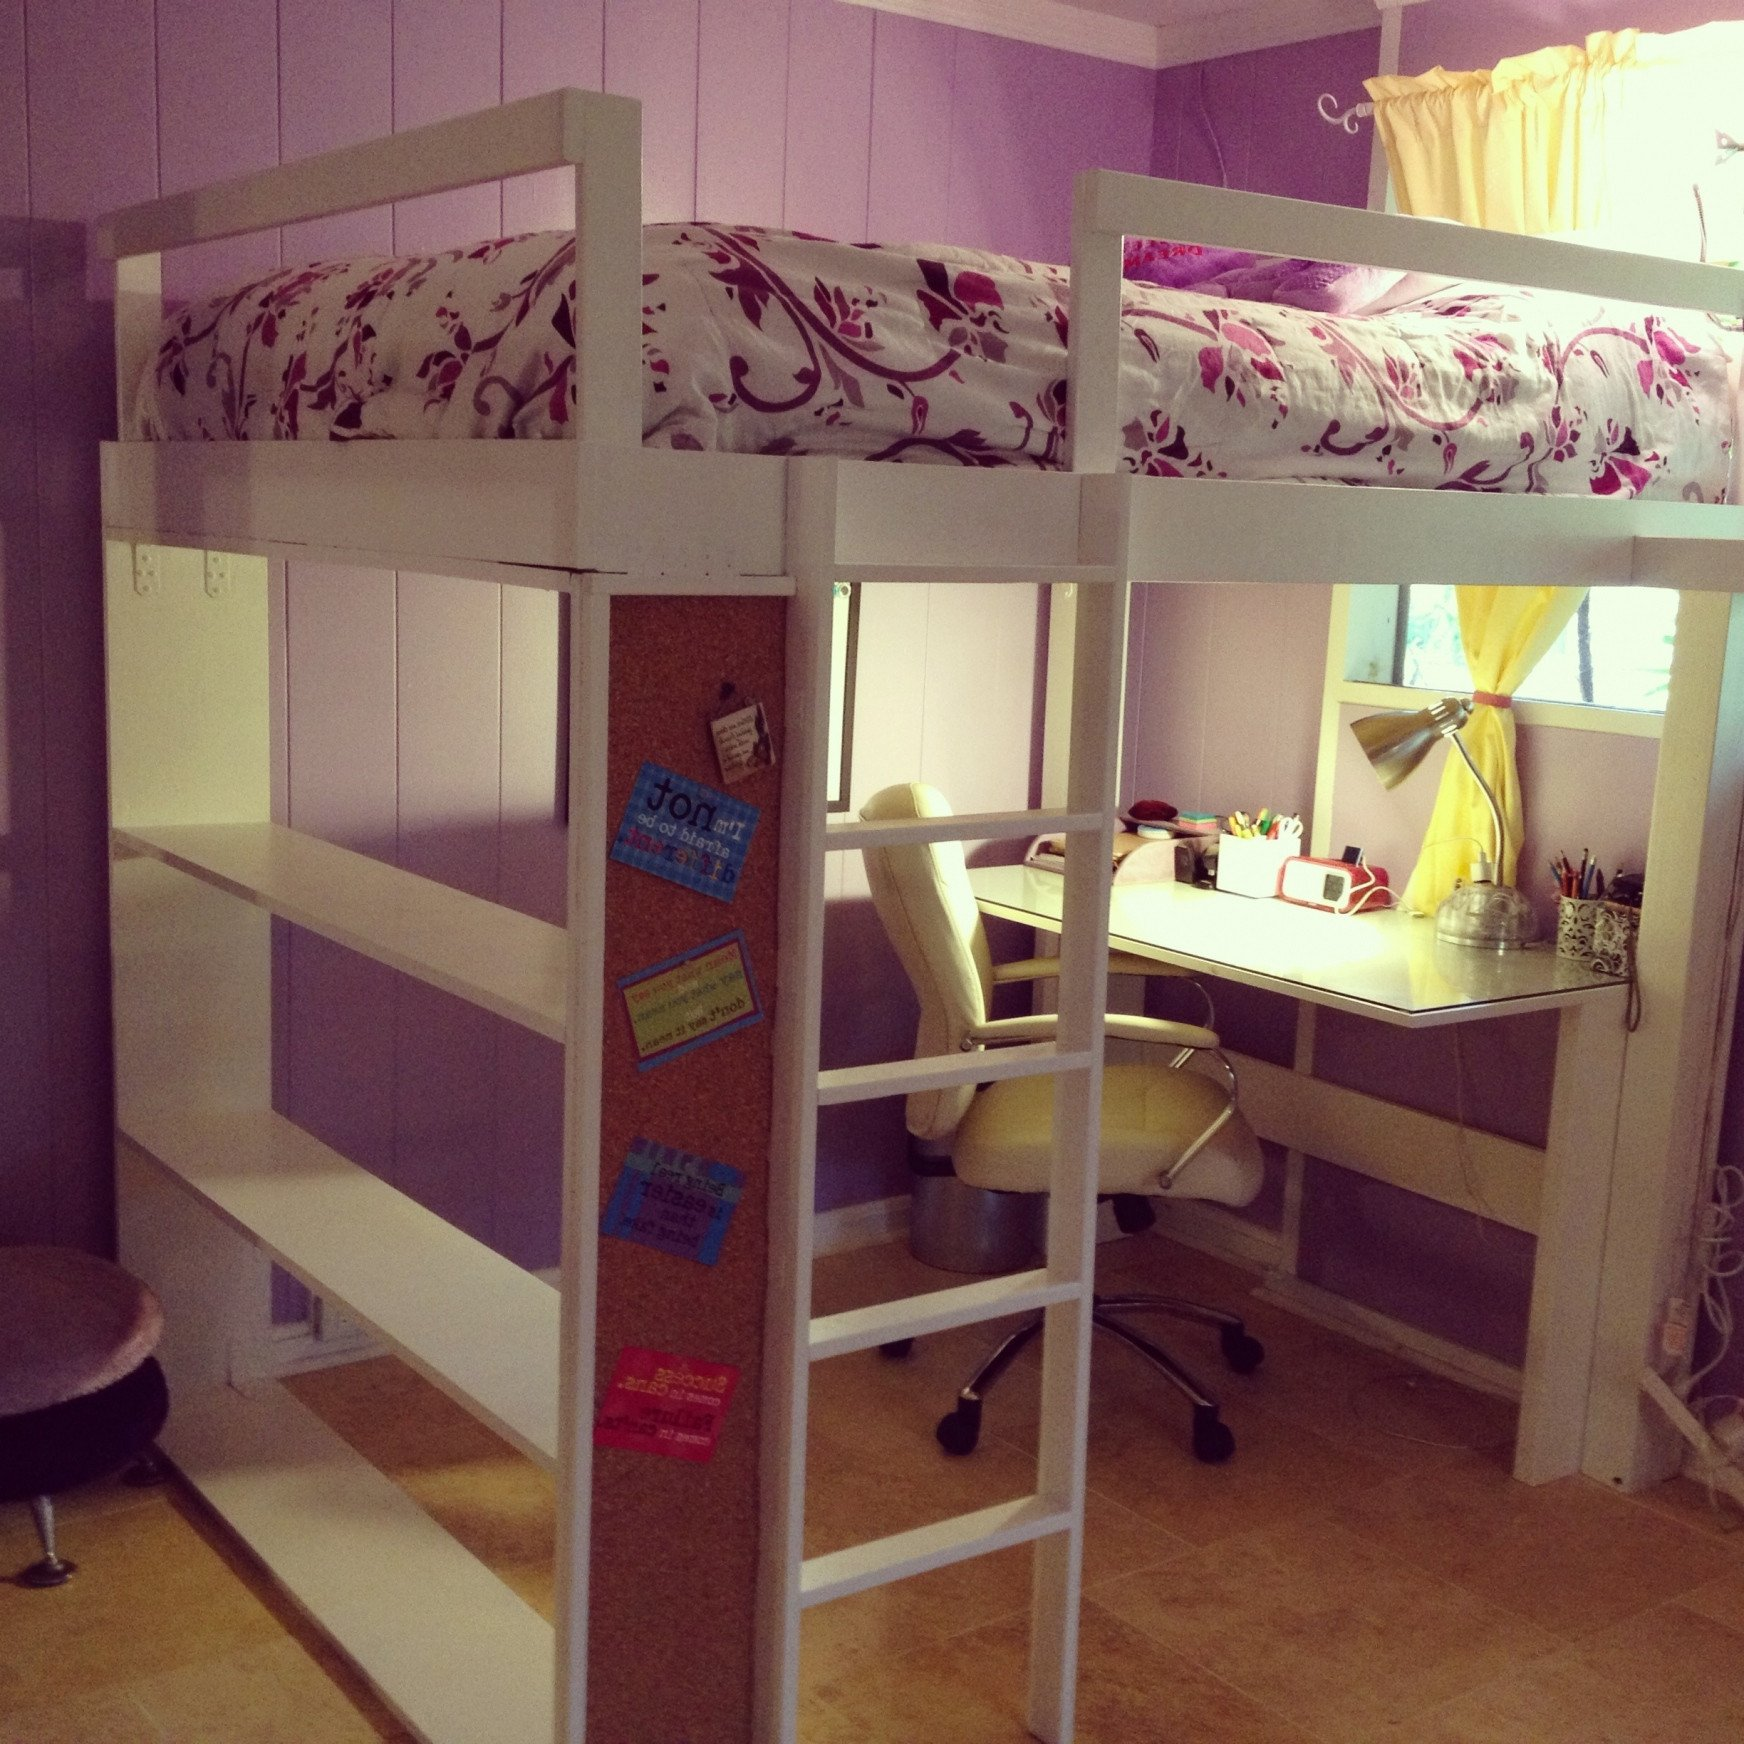 Rooms to Go Kid Bedroom Set Awesome Rooms to Go Kids Bedroom Sets Conquistarunamujer